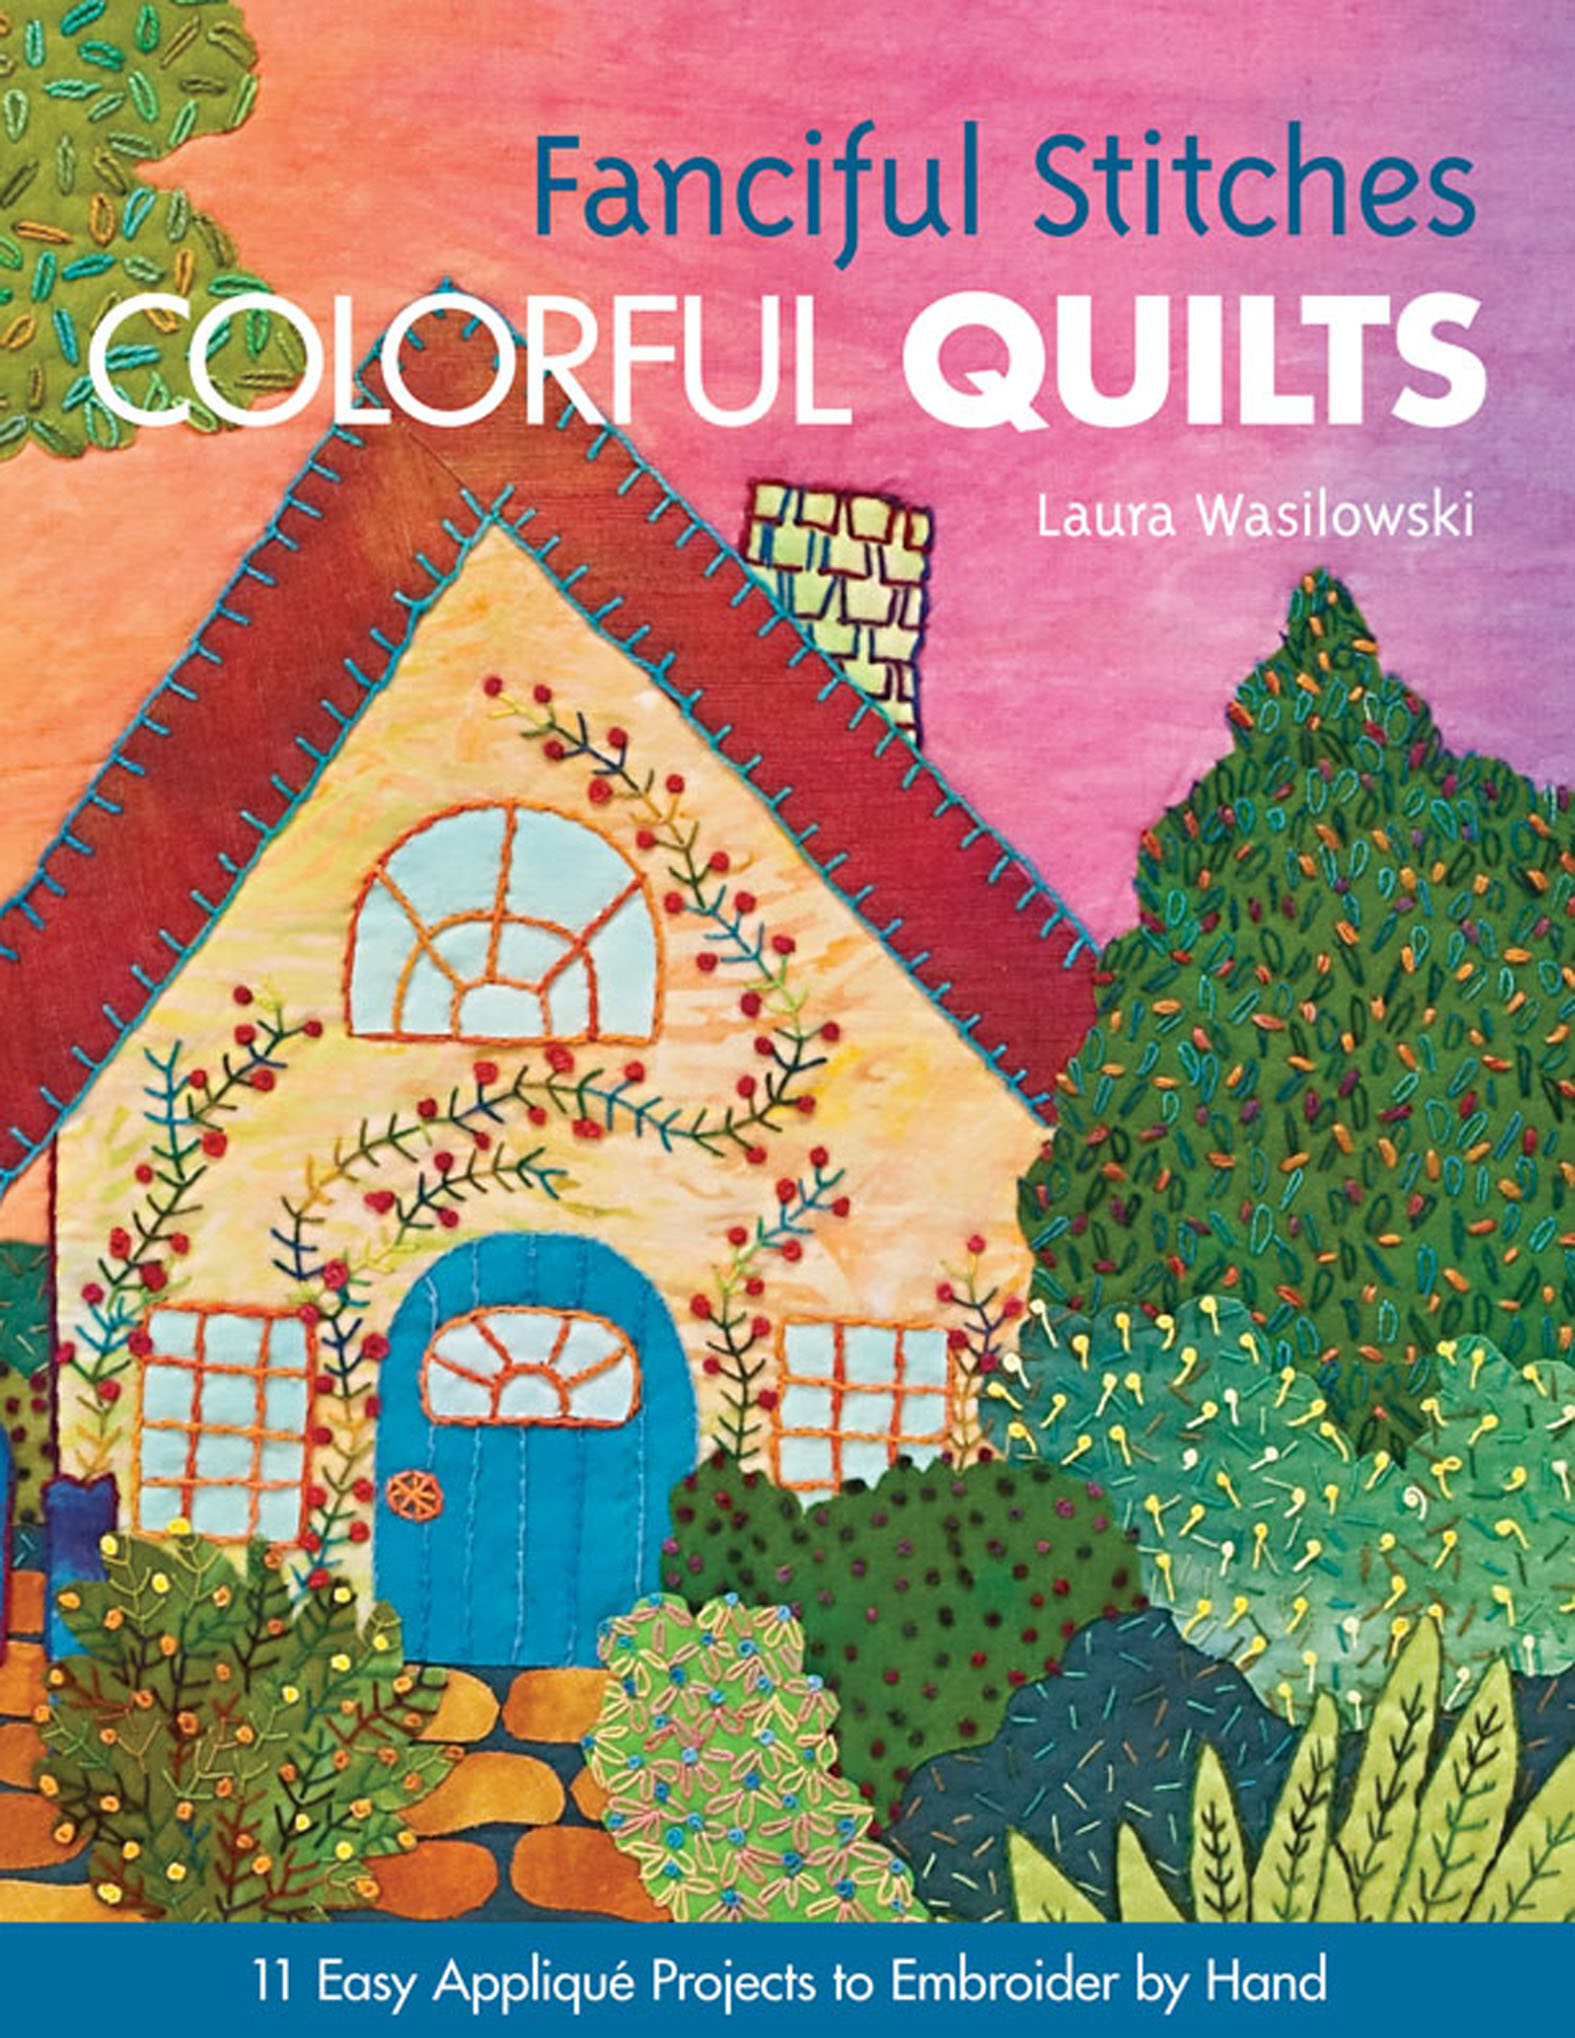 Fanciful Stitches, Colorful Quilts 11 Easy Applique Projects to Embroider by Hand